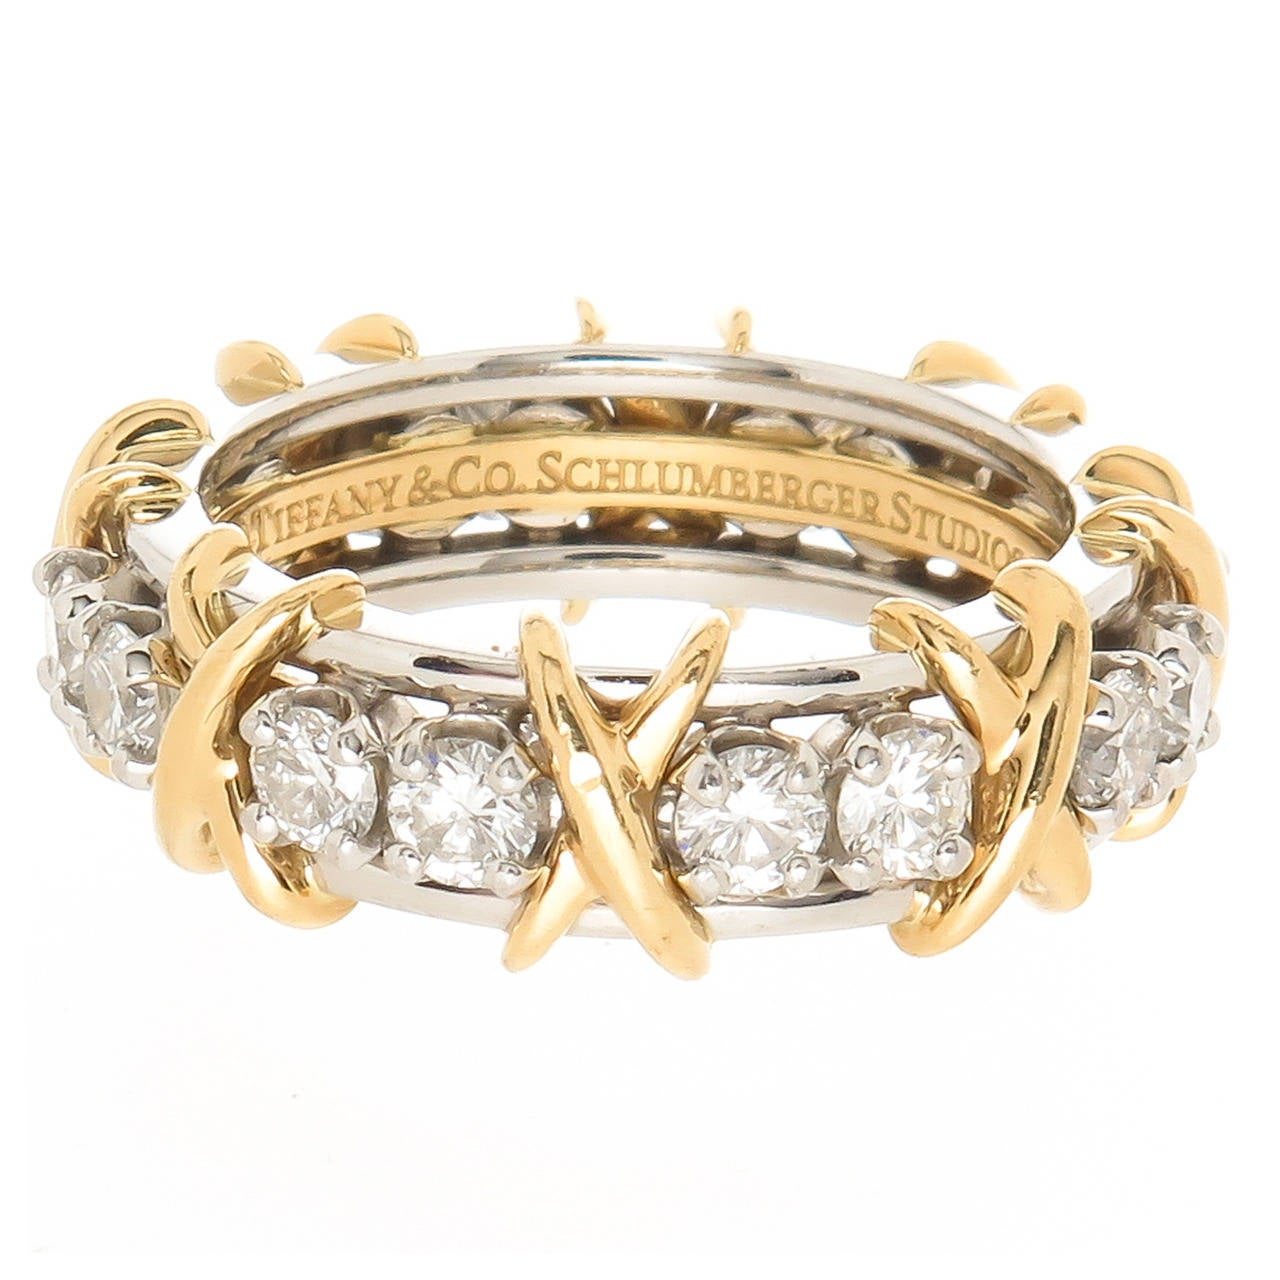 and co schlumberger platinum x ring at